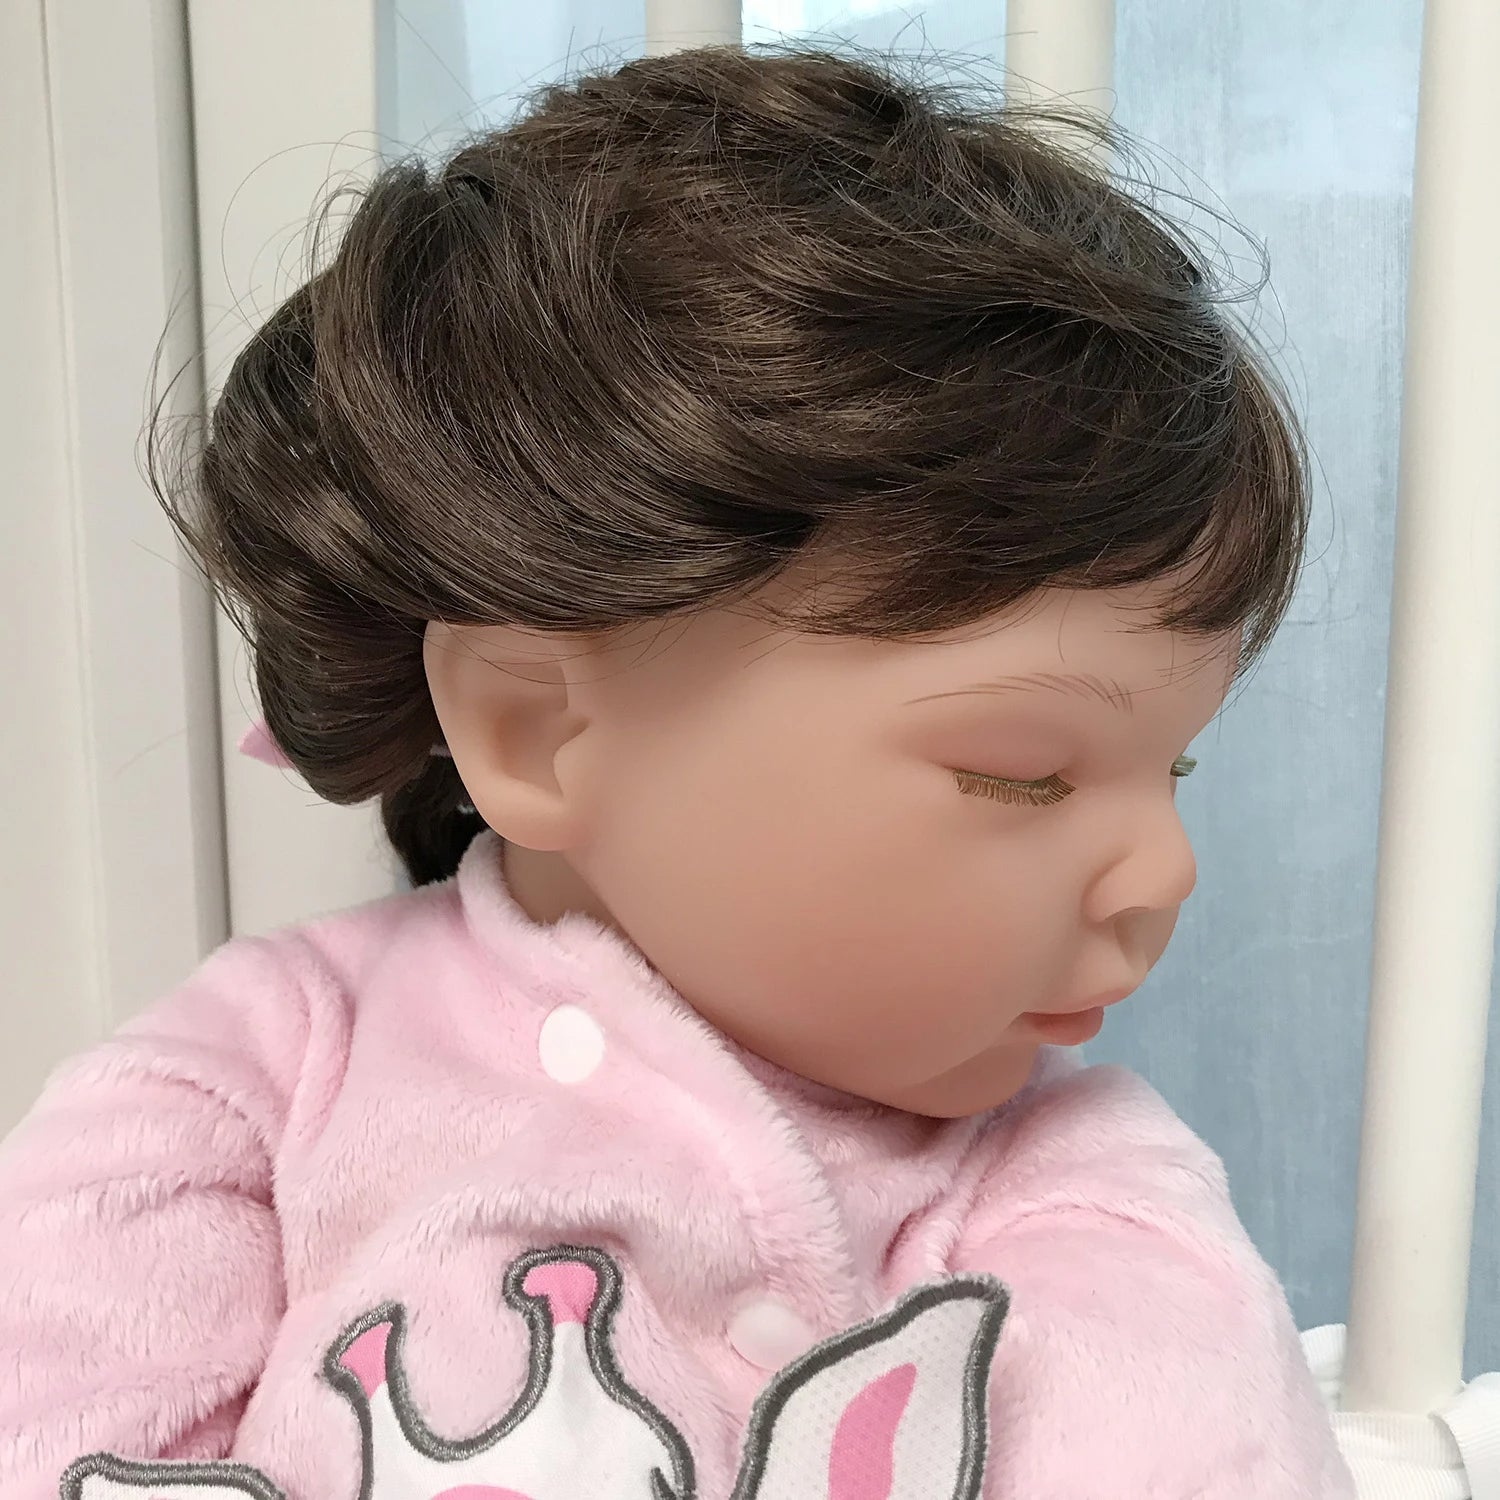 Try out new hairstyles with your dolls, or hats and hair accessories on your reborn dolls